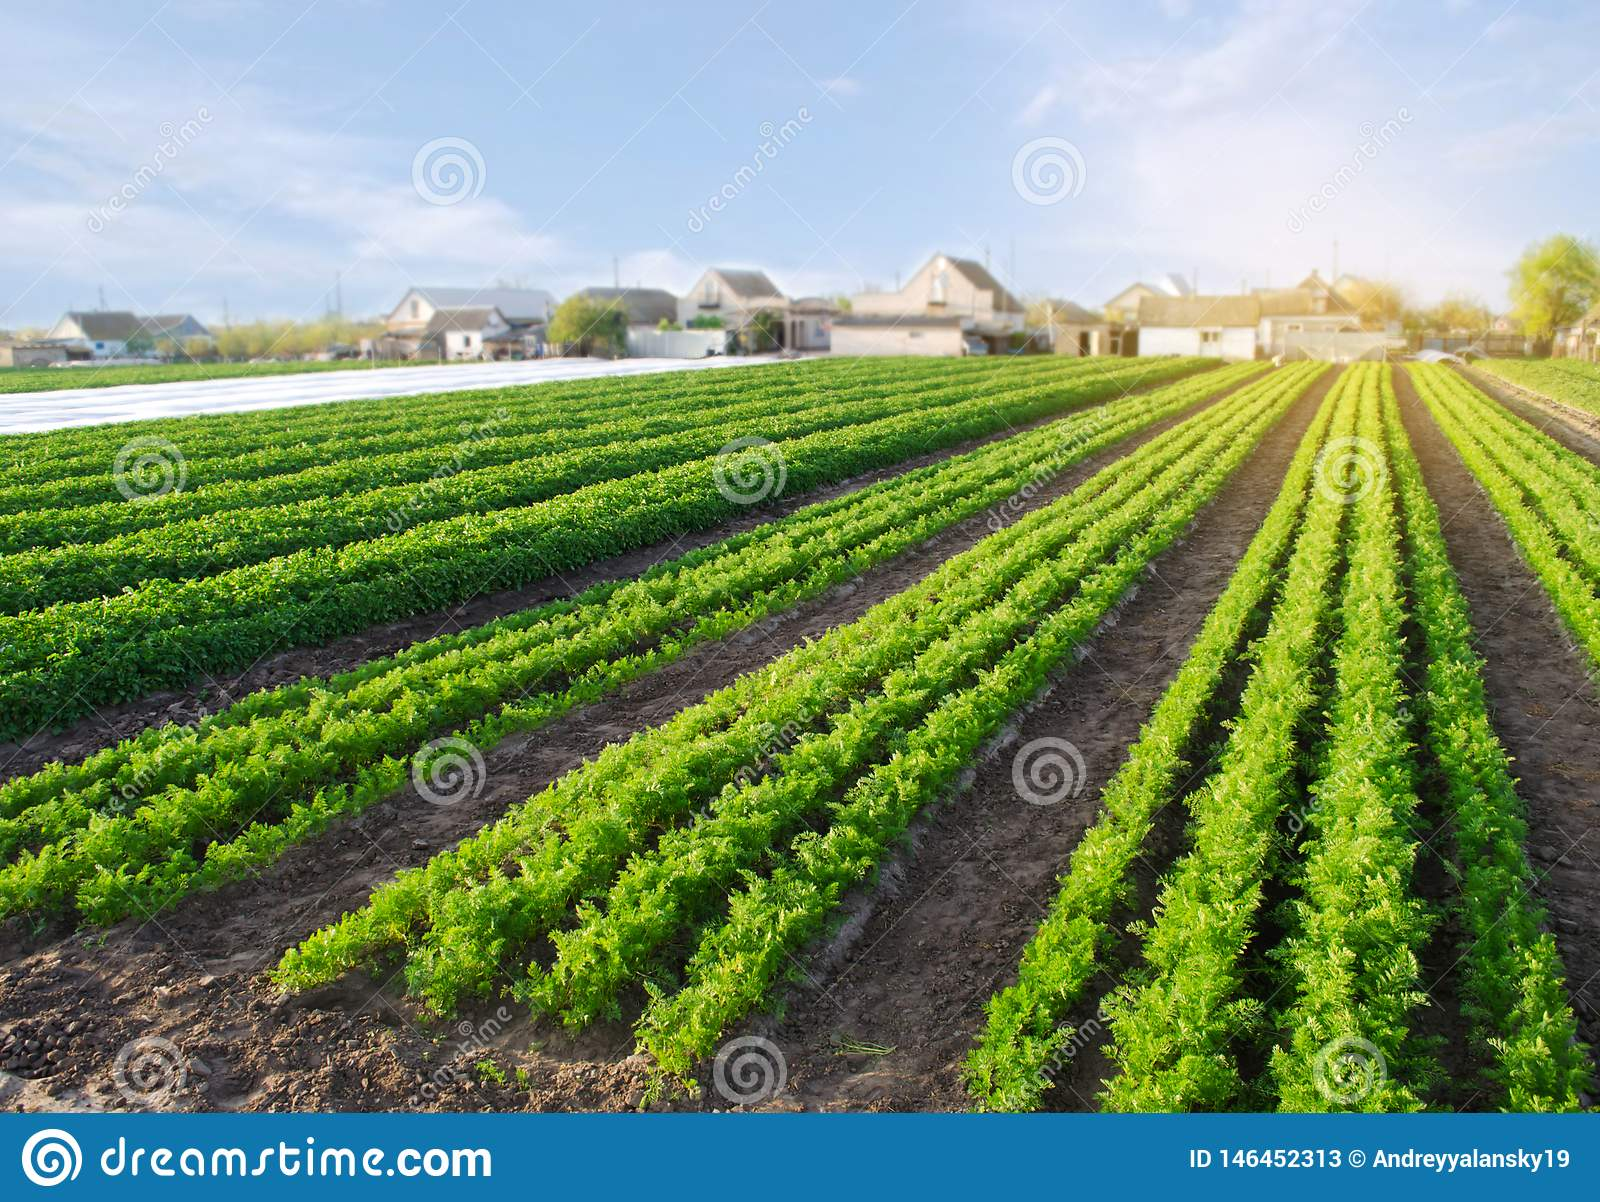 Carrot Plantations Grow In The Field. Vegetable Rows ...